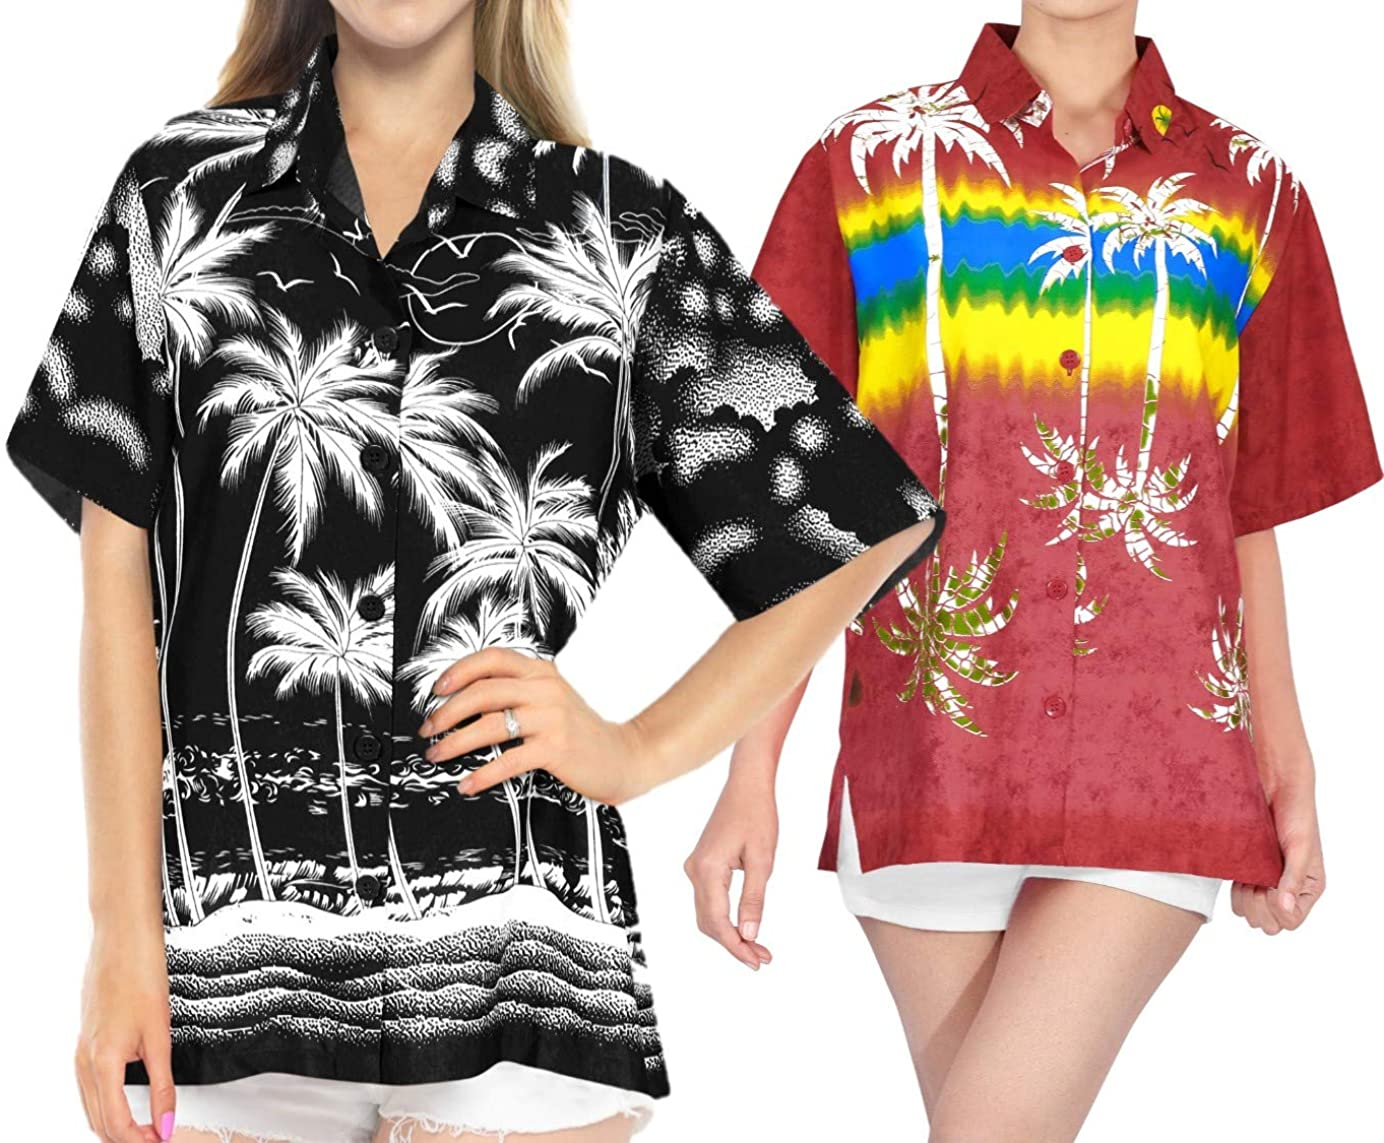 LA LEELA Women's Plus Size Golf Hawaiian Shirt Beach Camp Aloha Shirt Work from Home Clothes Women Beach Shirt Blouse Shirt Combo Pack of 2 Size XL